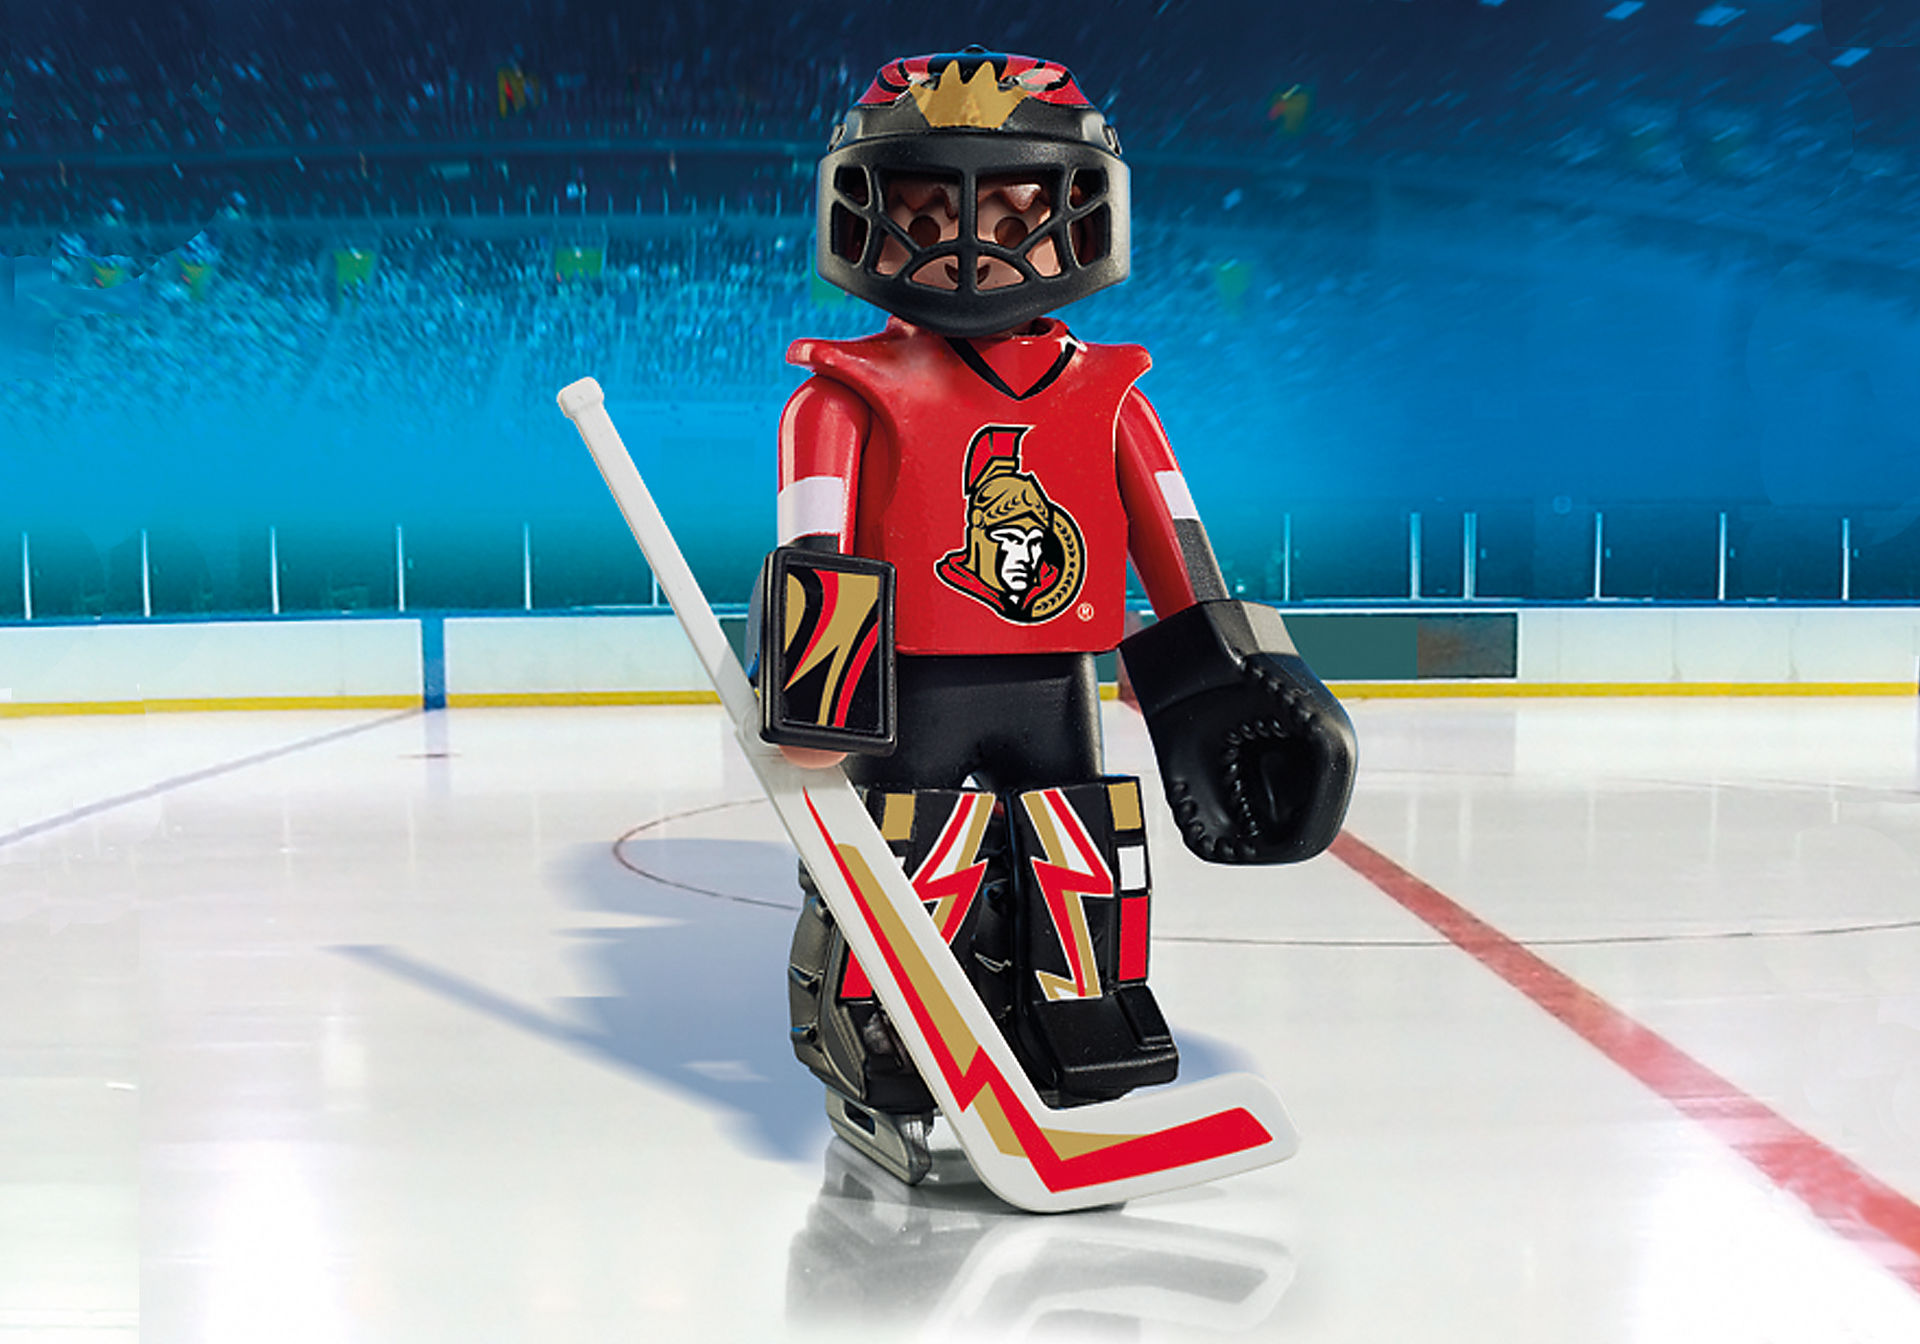 9018 NHL™ Ottawa Senators™ Goalie zoom image1